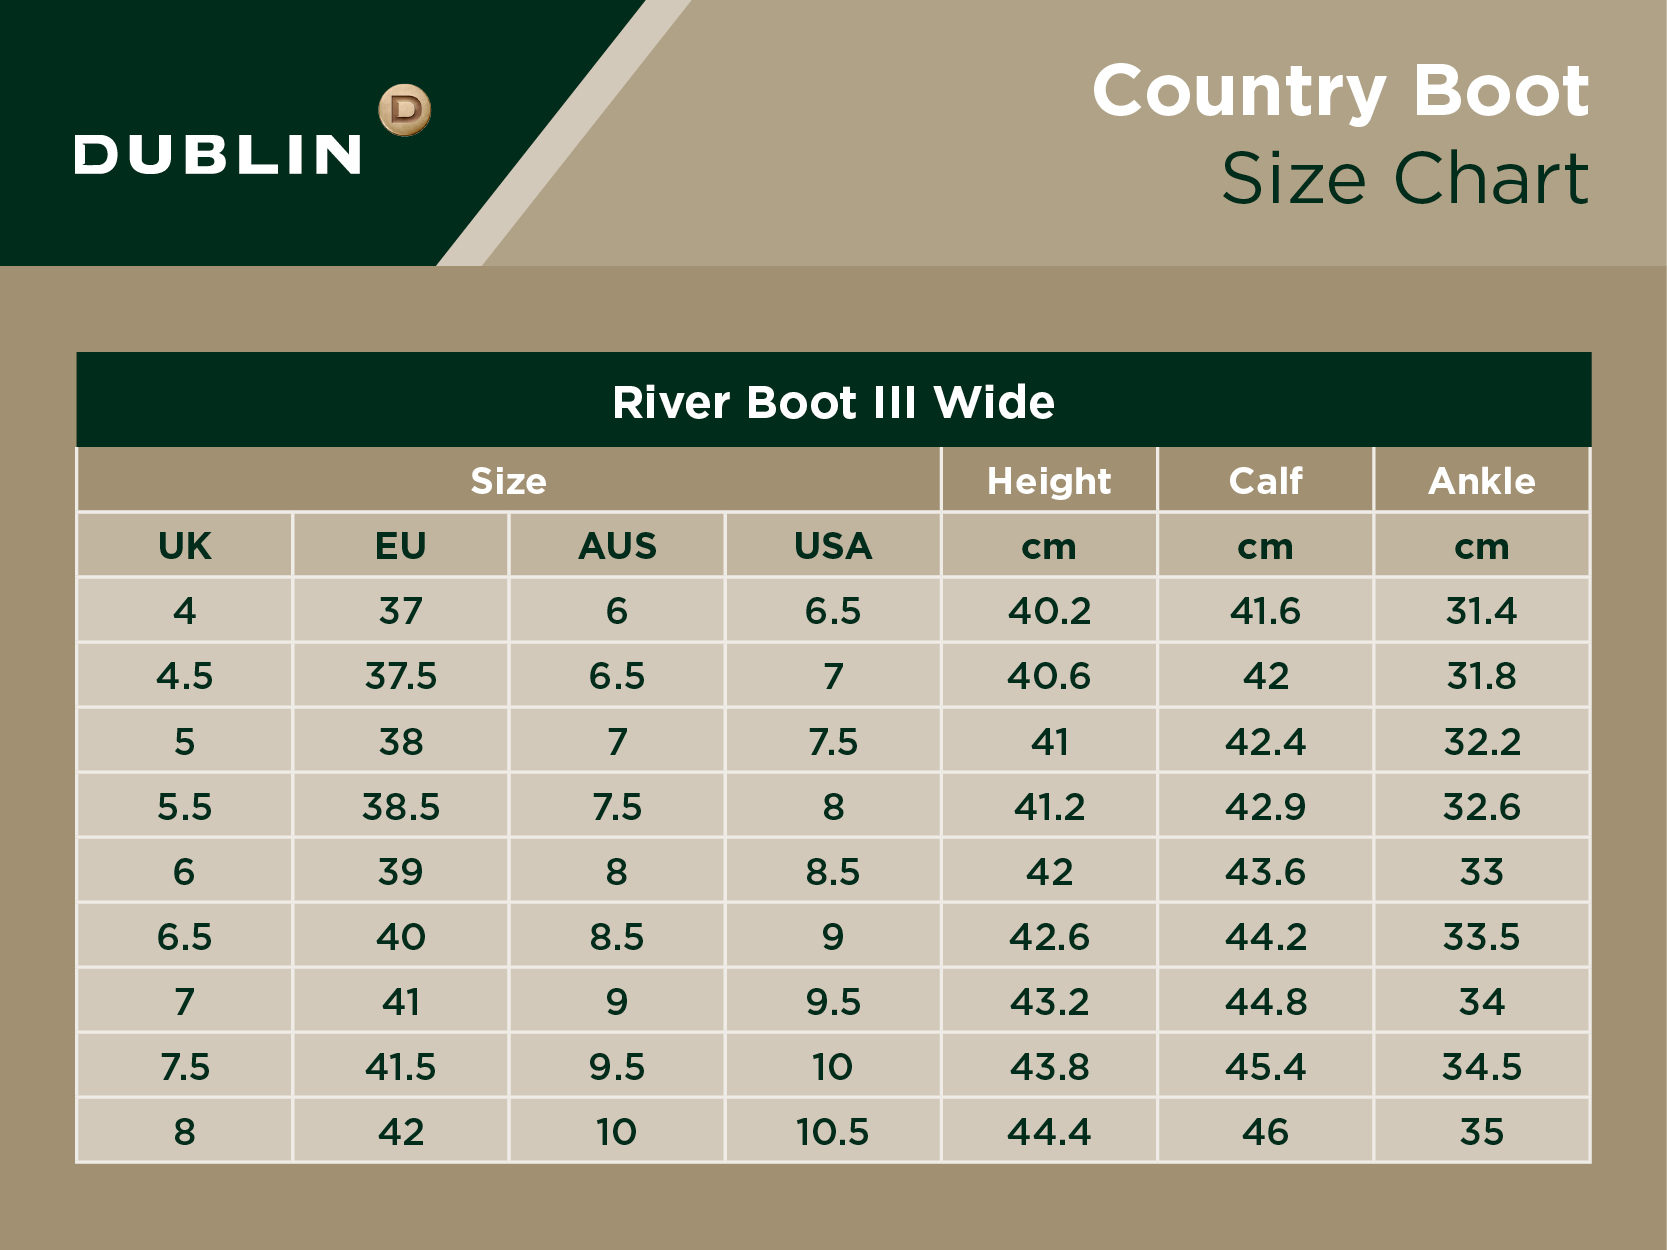 River Boot III Wide Size Chart